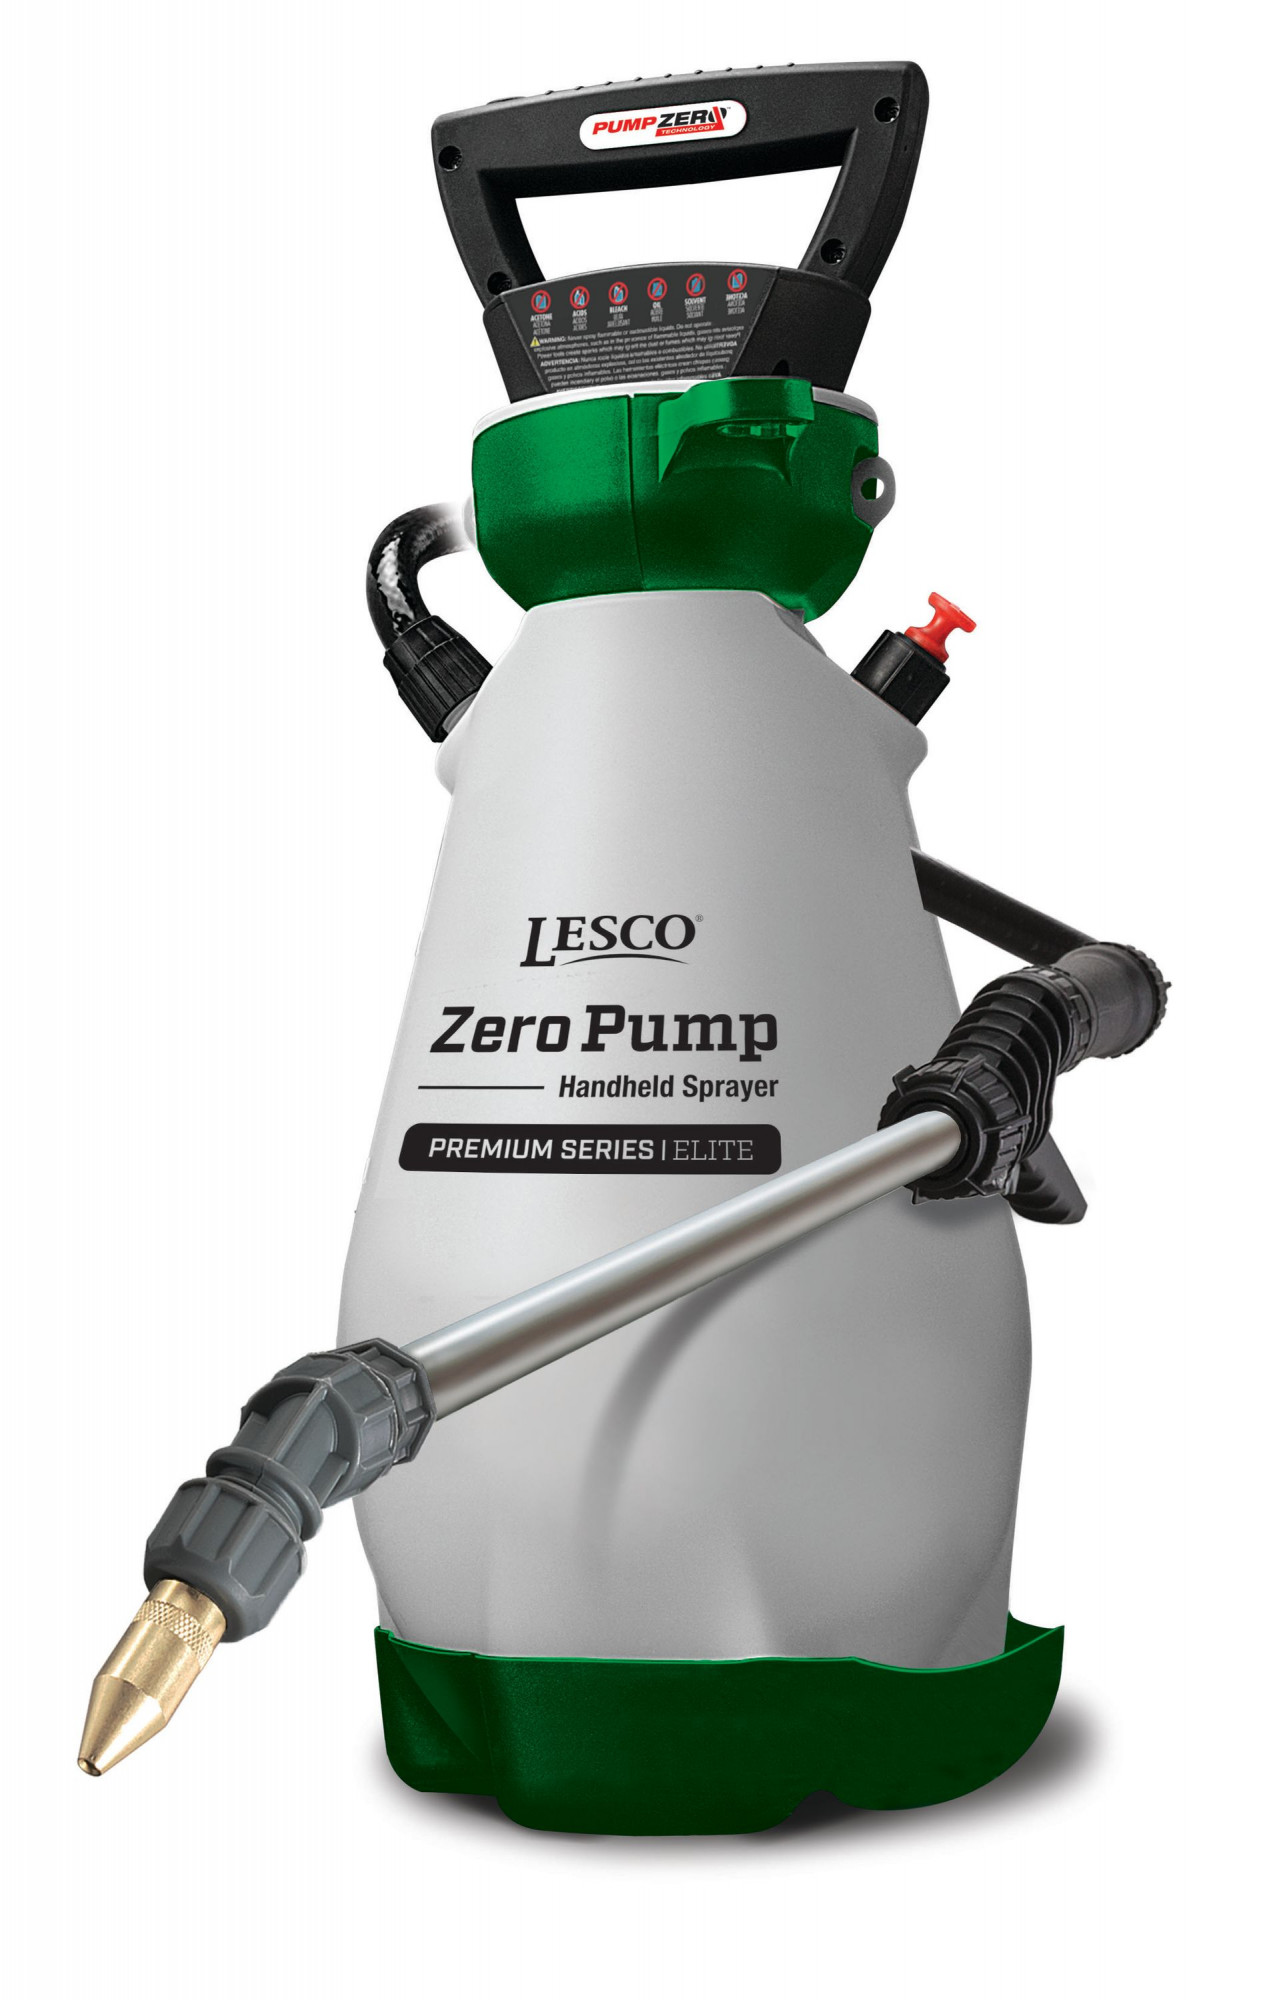 LESCO® Zero Pump,2 Gal, Elite Premium Series,Lith-Ion Battery Powered Sprayer, Model 190594